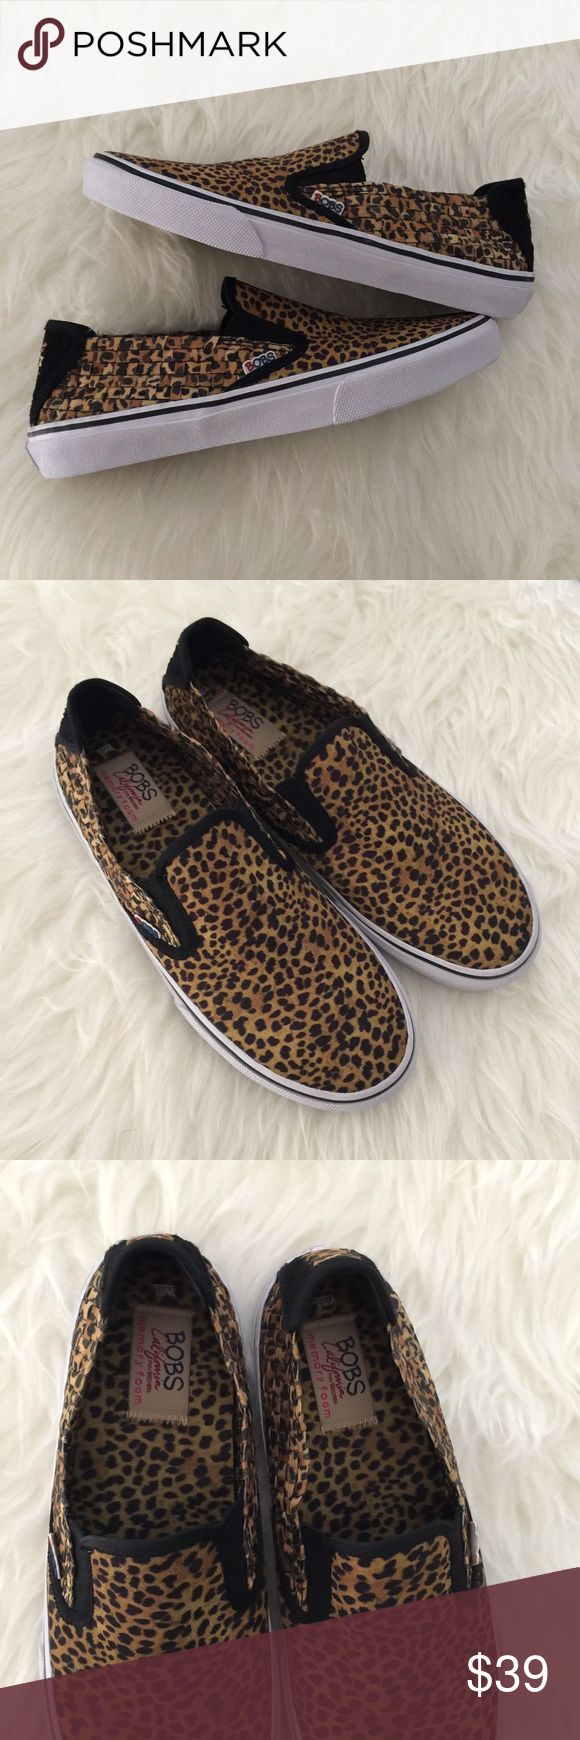 Bobs cheetah leopard slip on weaved shoes Skechers New, never worn size 8.5 cheetah/leopard print shoes. Memory foam, weaved material. Very comfortable and easy to wear. Please review photos for details. Some minor dirt spots from the store/storage. No trades Skechers Shoes